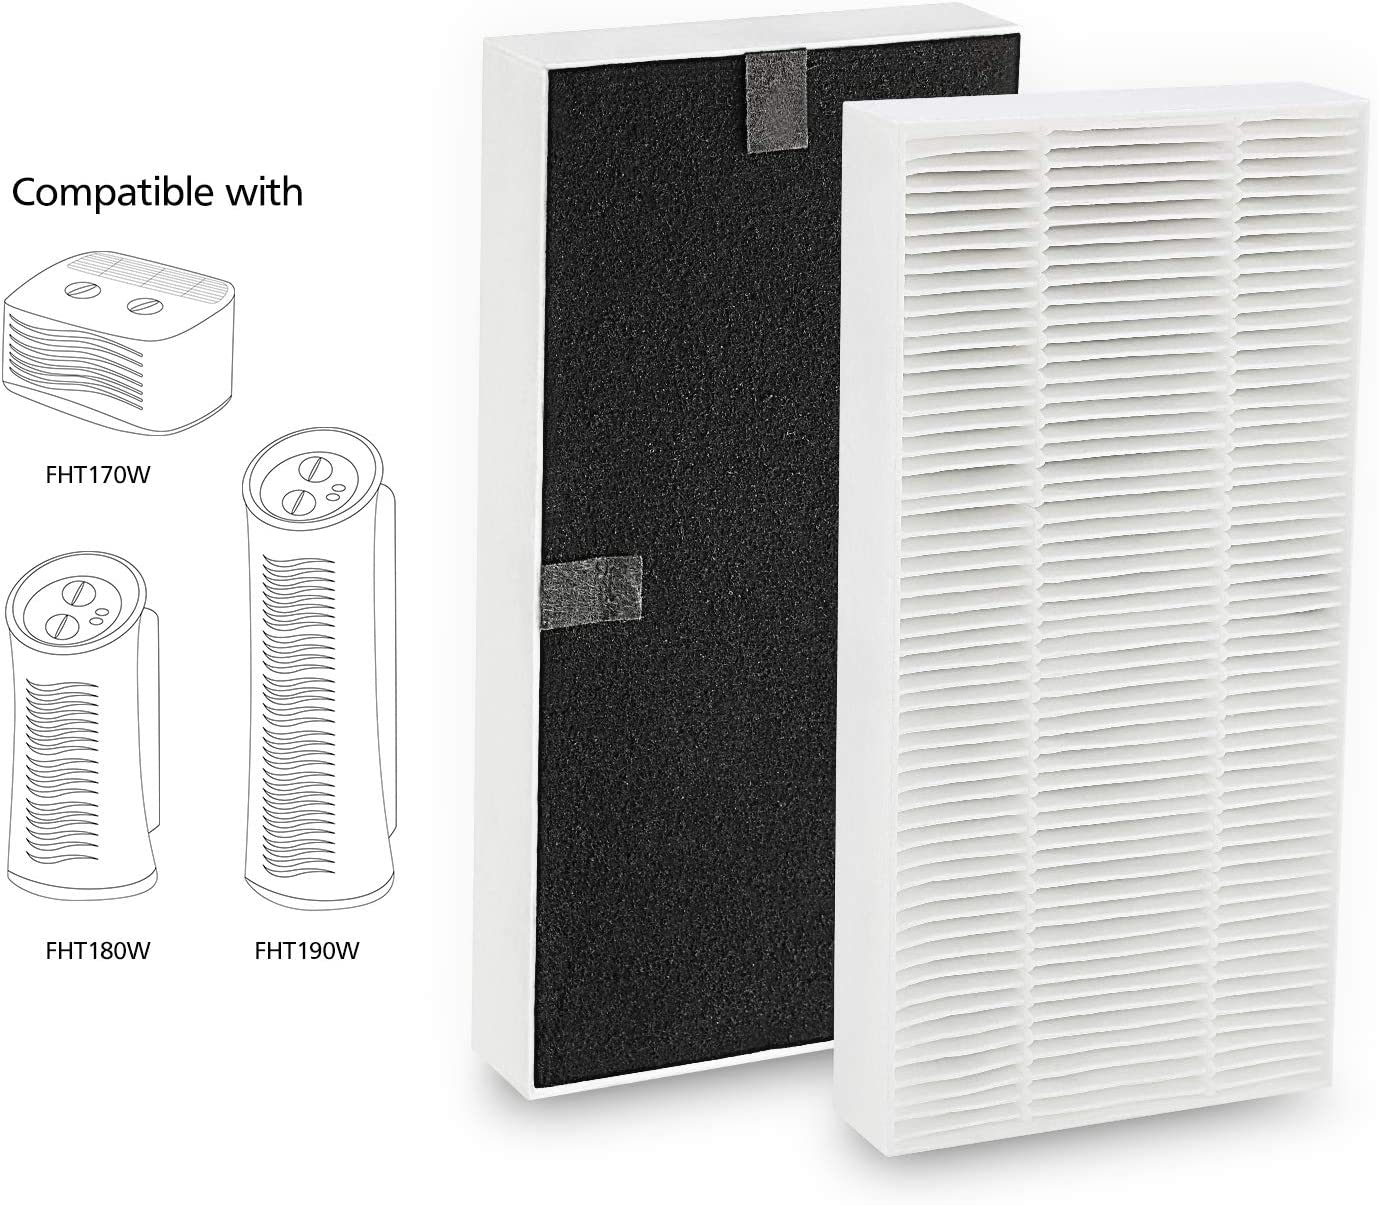 isinlive HEPA Air Purifier Replacement Filter 2 Pack for Febreze FRF102B, for Honeywell U Filter, Removes Smells and 99.7% of Dust Particles